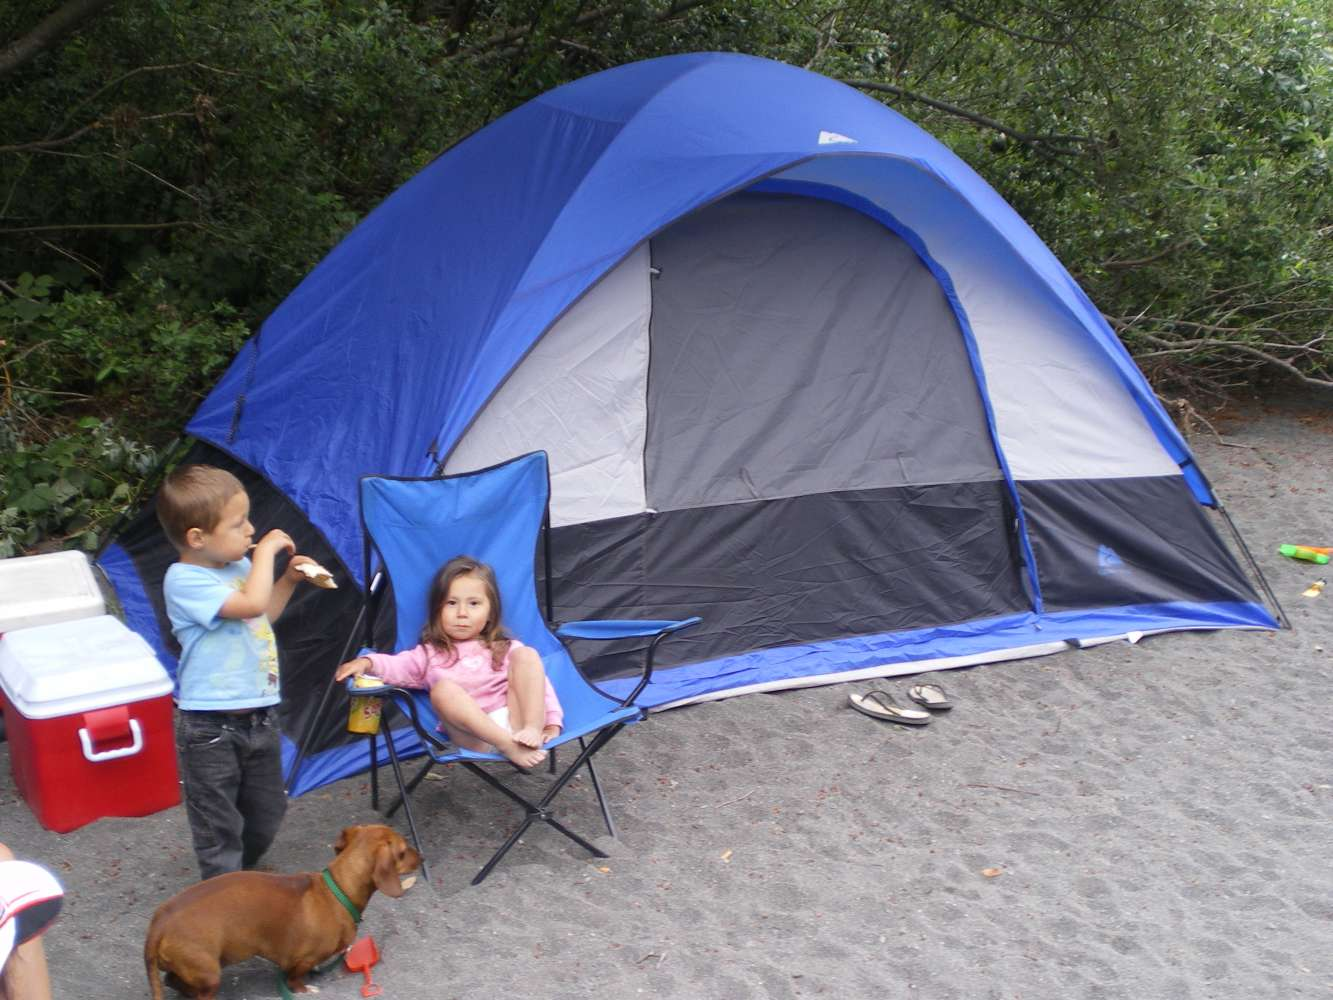 & Review of Ozark Trails 13u2032 X 10u2032 Dome Tent | Ozark Trail Tents